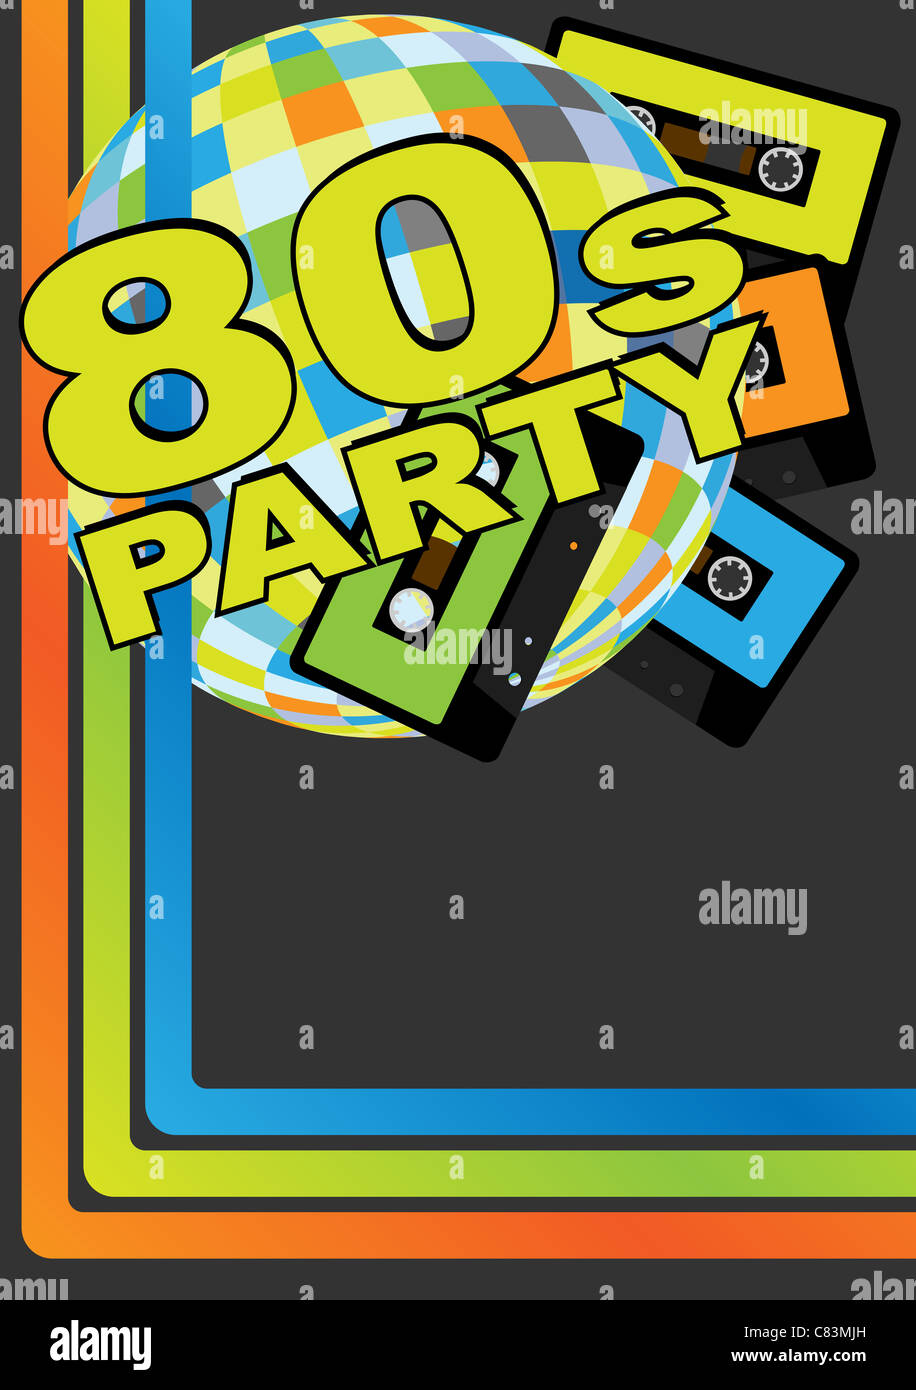 Retro Party Background - Retro Audio Cassette Tapes, Disco Ball and 80s Party Sign - Stock Image